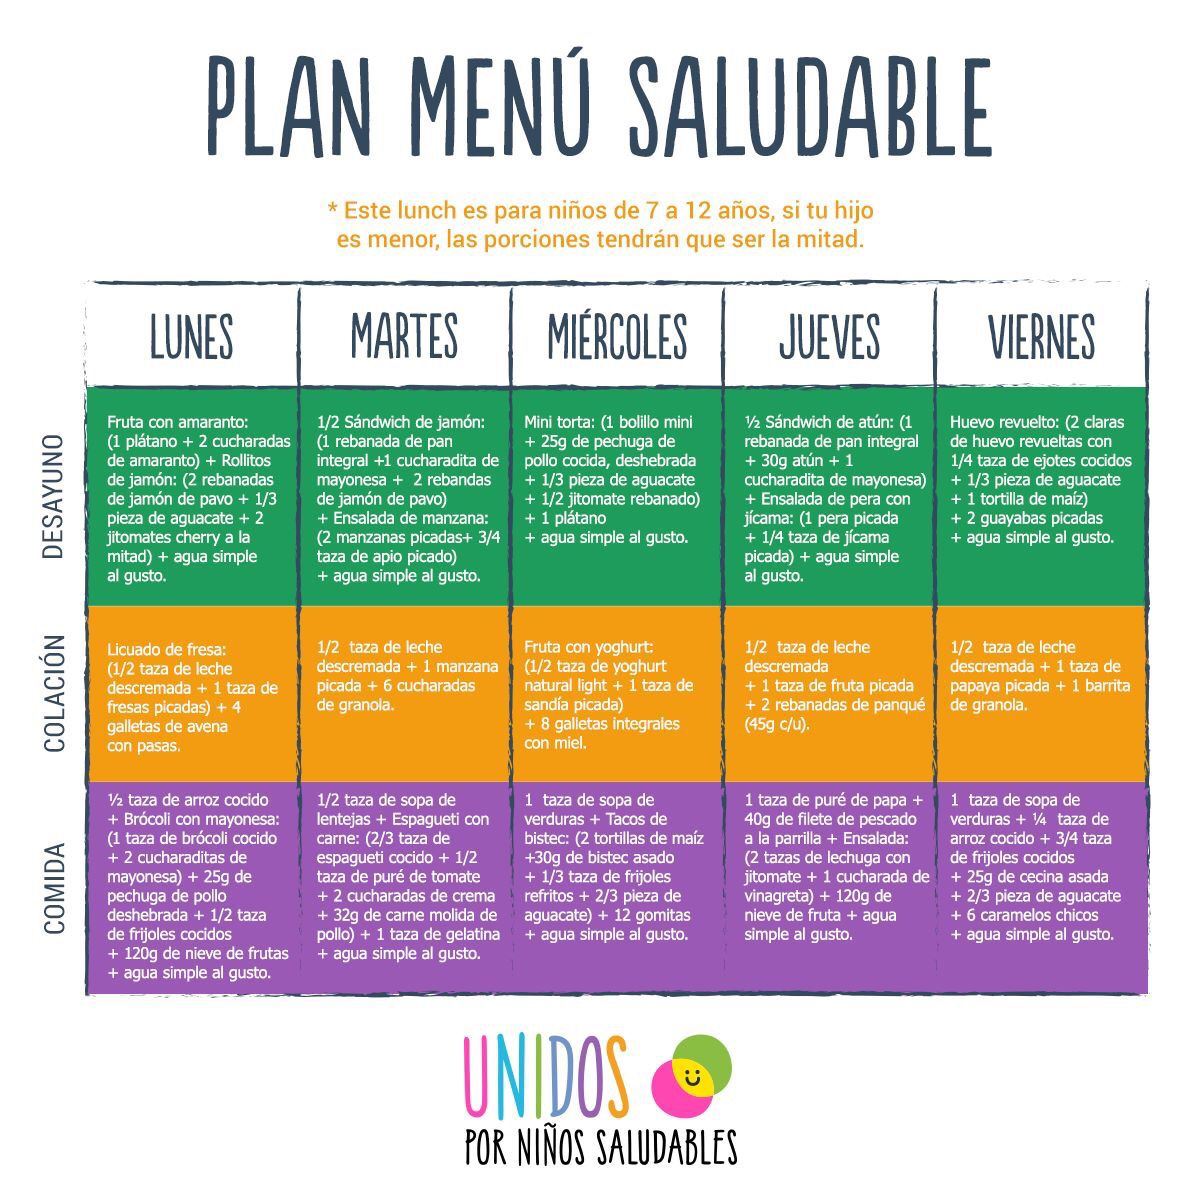 Plan refrigerio saludable recetas pinterest - Ideas de comidas sanas ...